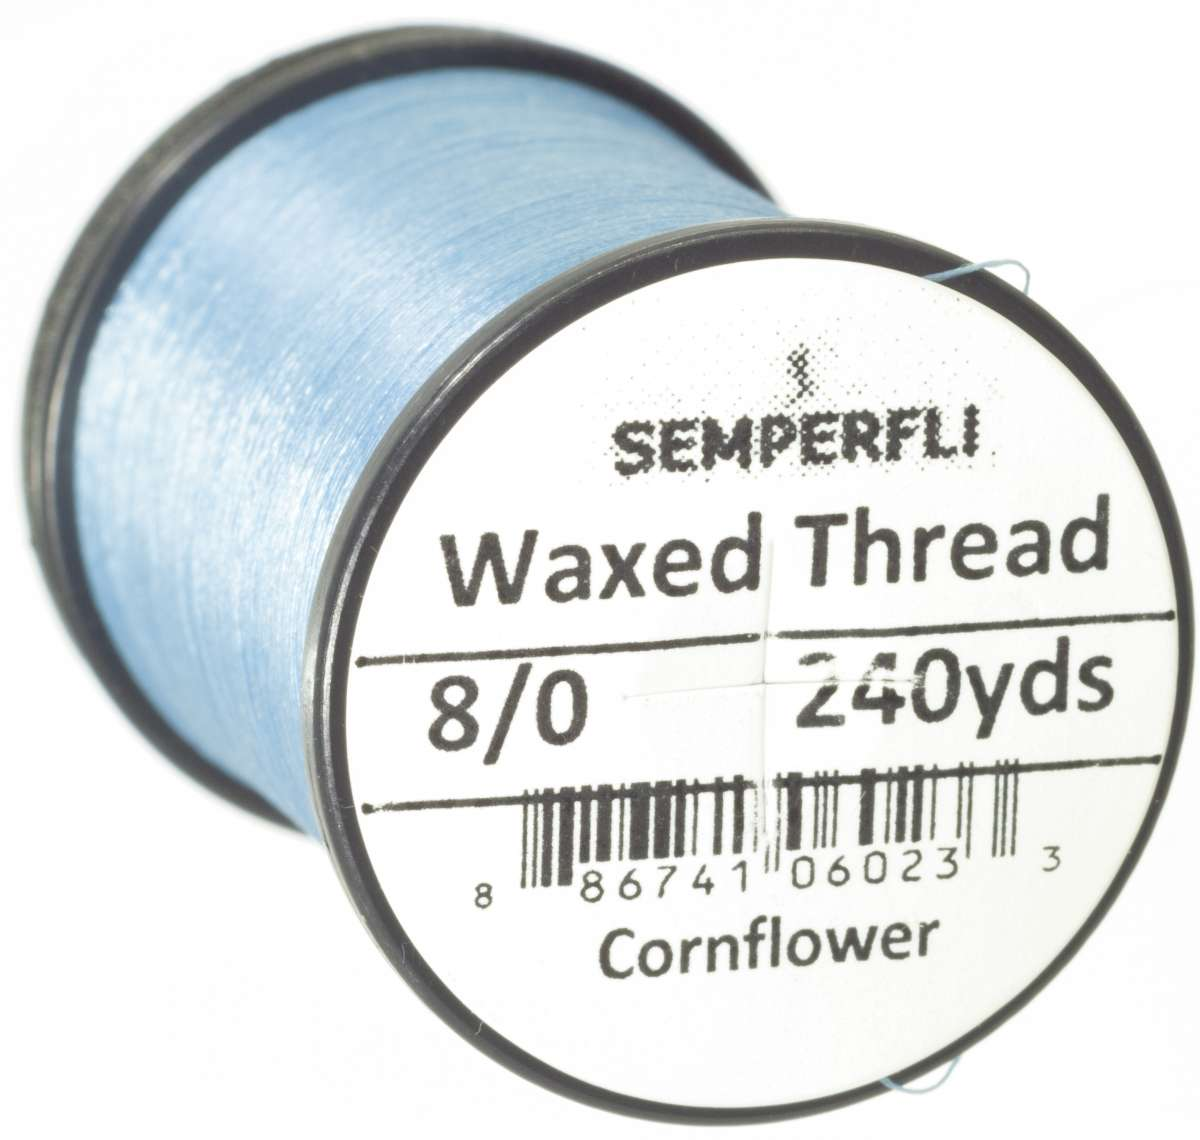 8/0 Classic Waxed Thread Cornflower Sem-0400-1615